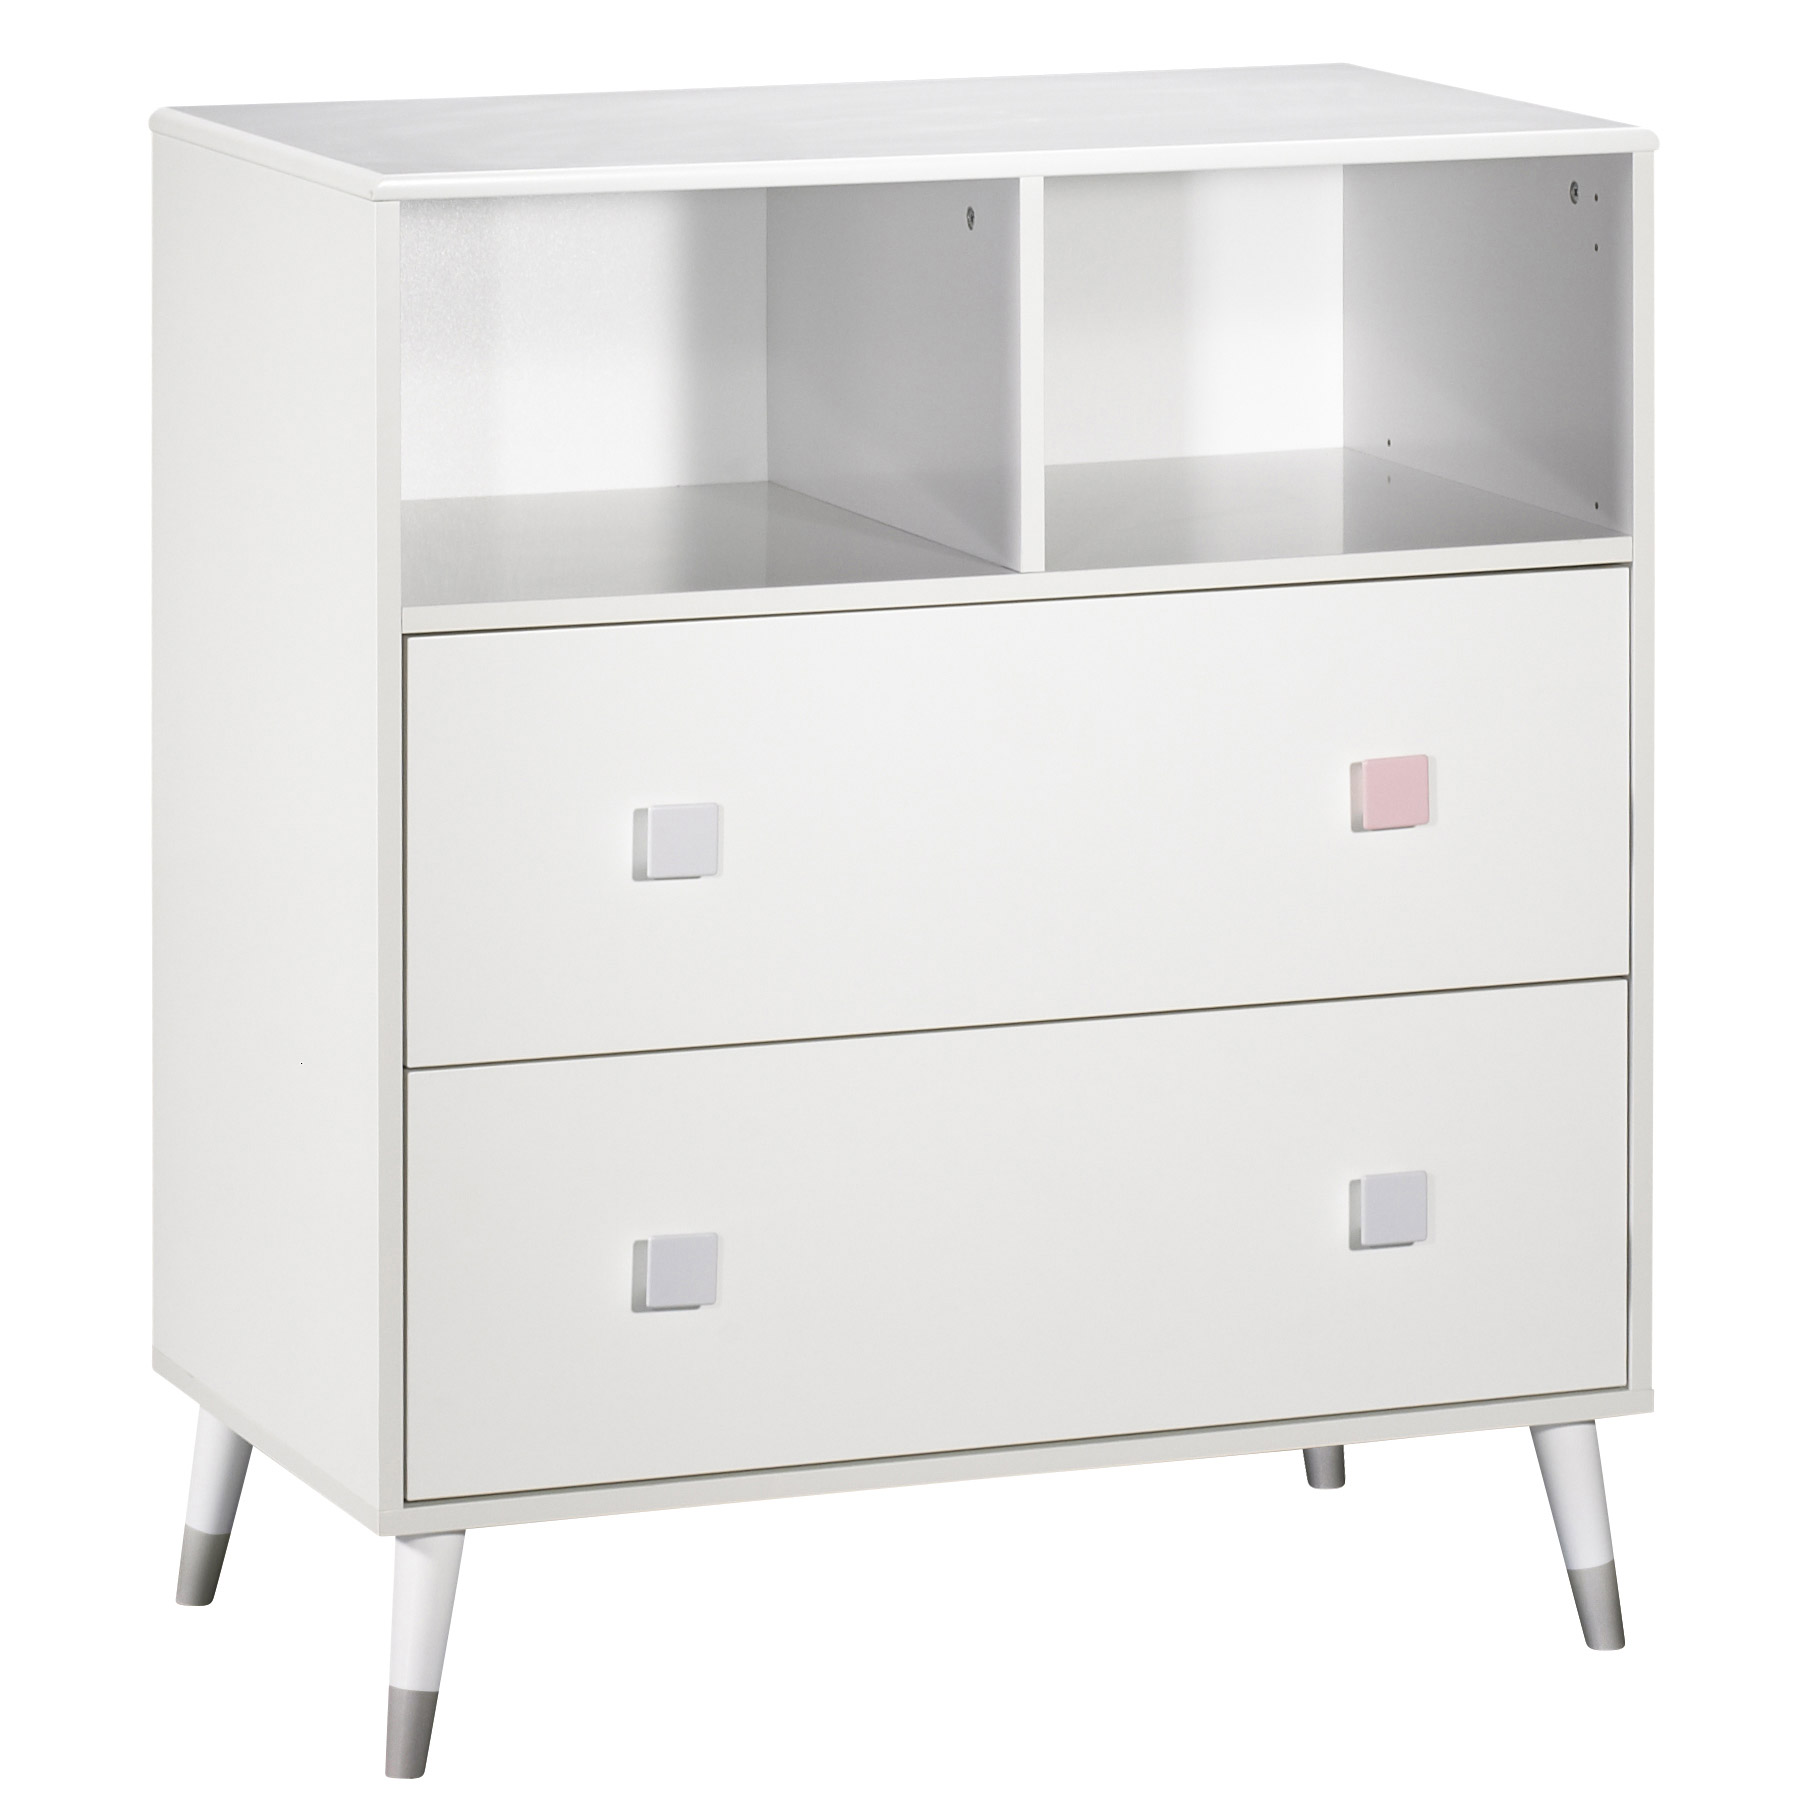 Candie commode 2 tiroirs Blanc  de Sauthon Baby's Sweet Home